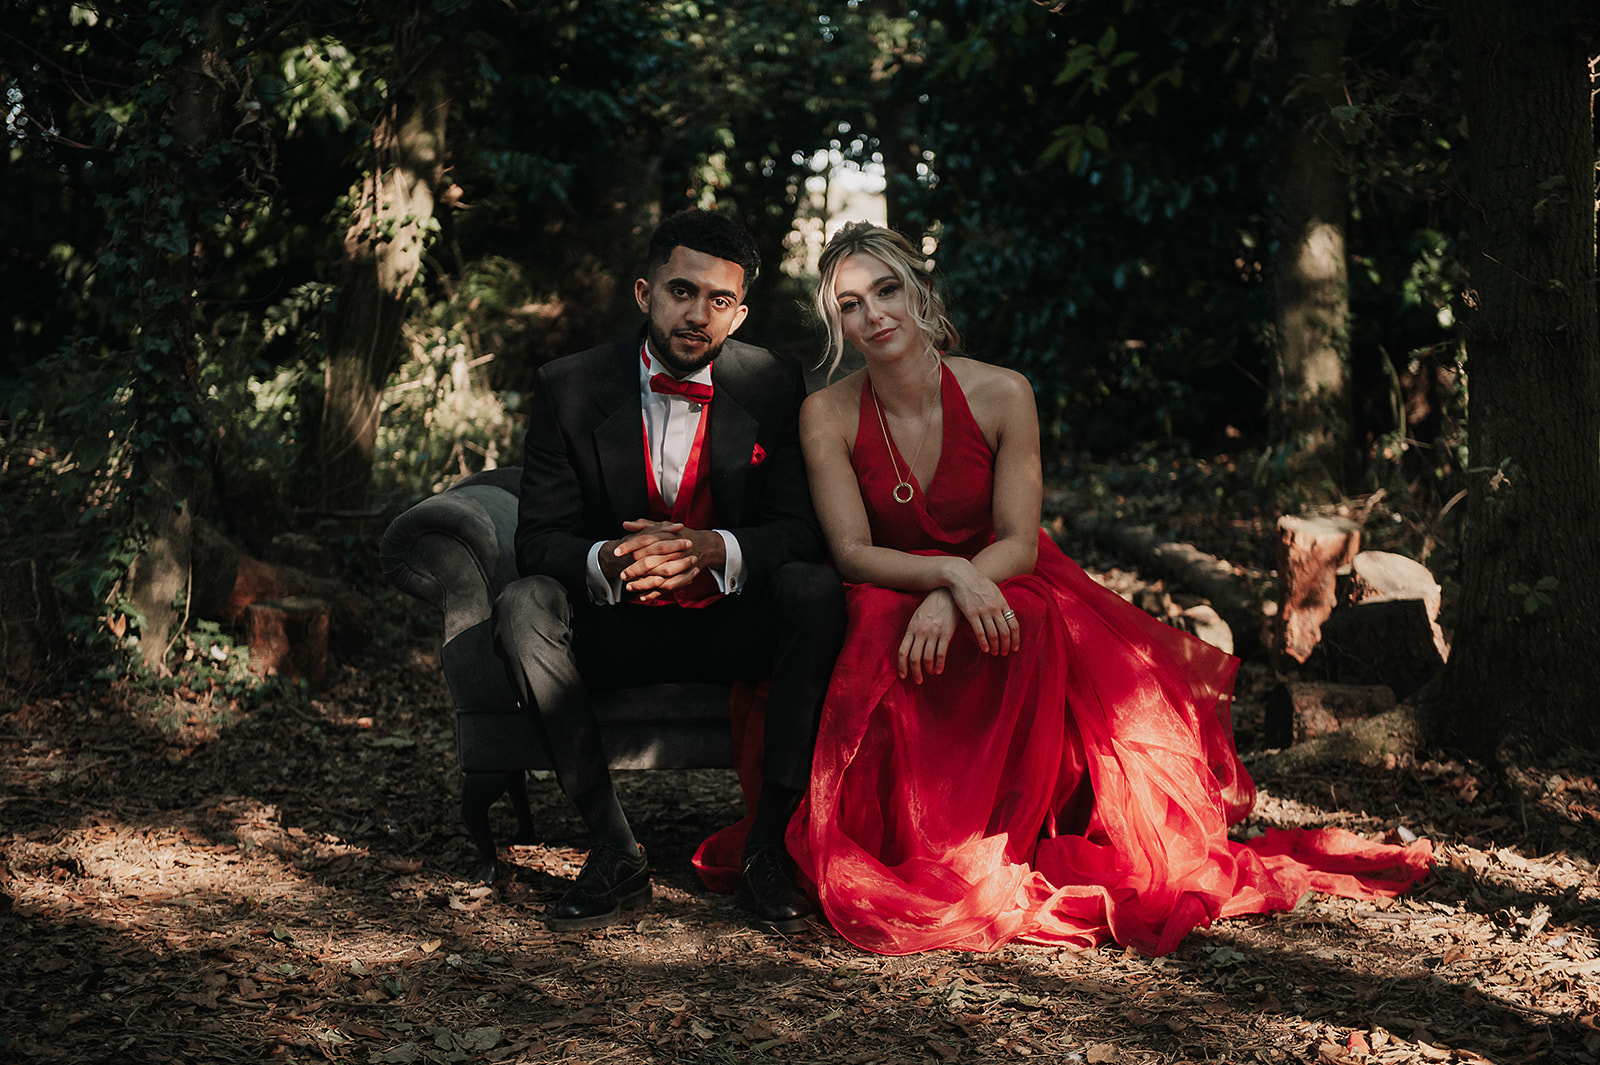 red wedding - forest elopement photoshoot - red wedding dress - alternative bridal wear - forest wedding